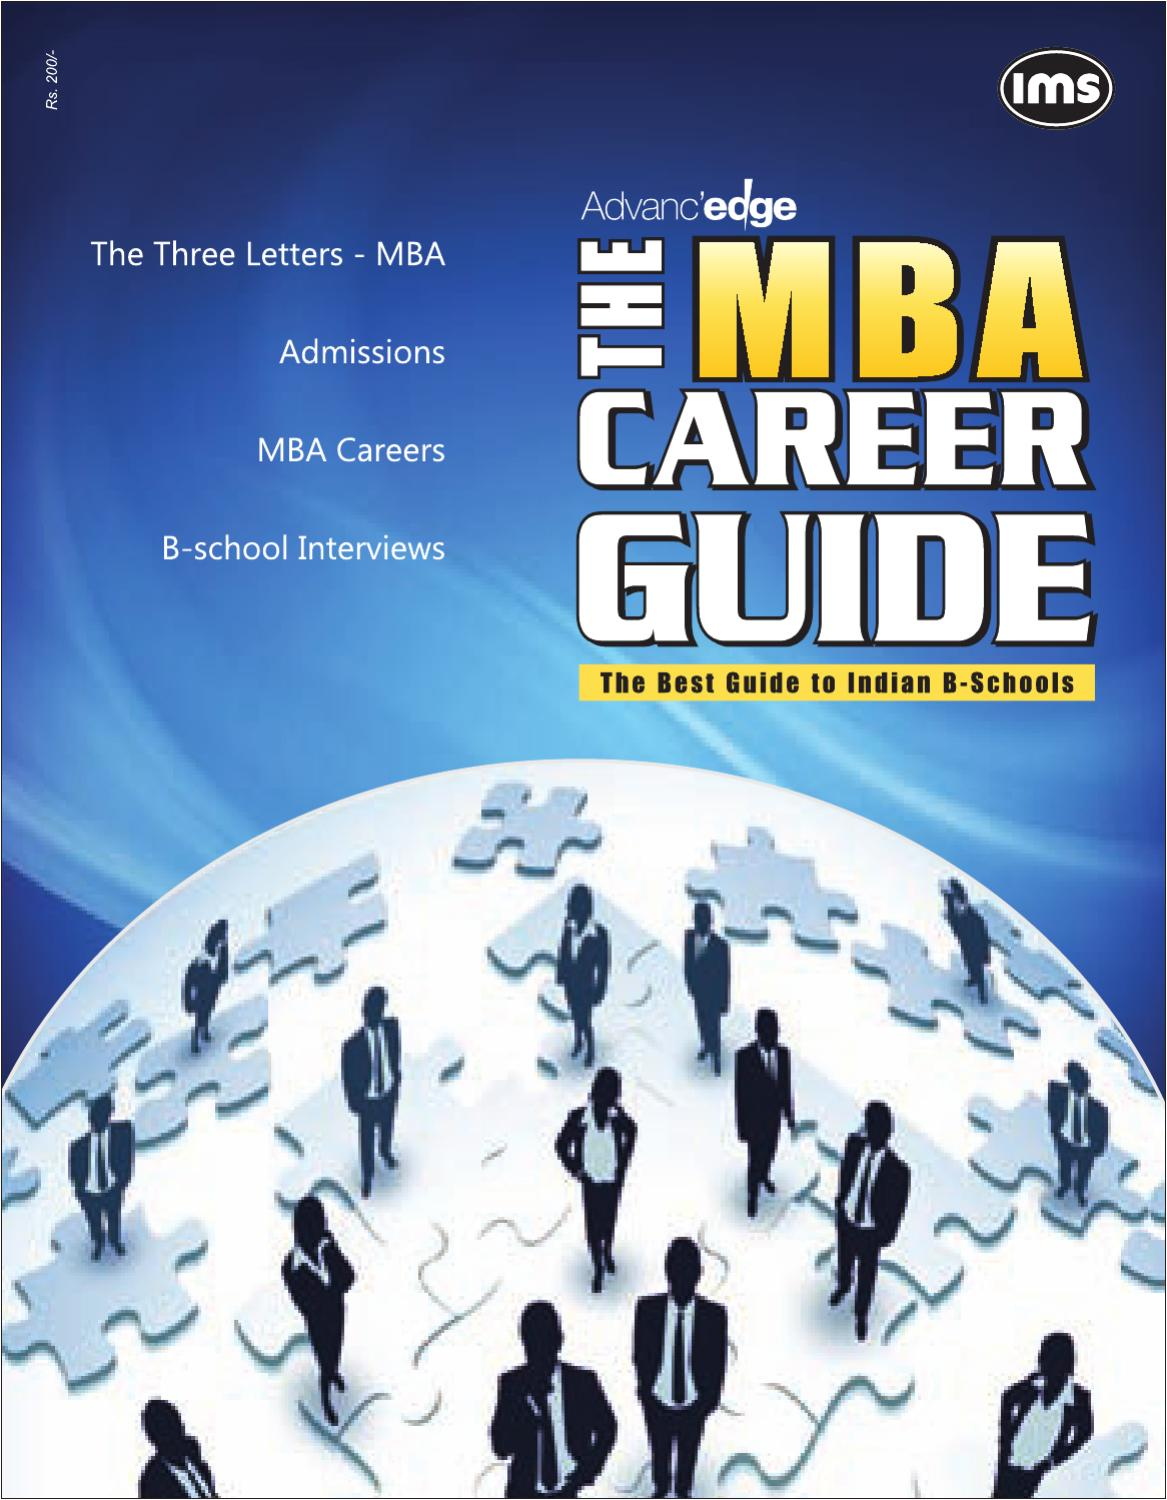 mba career guide by ims publications issuu